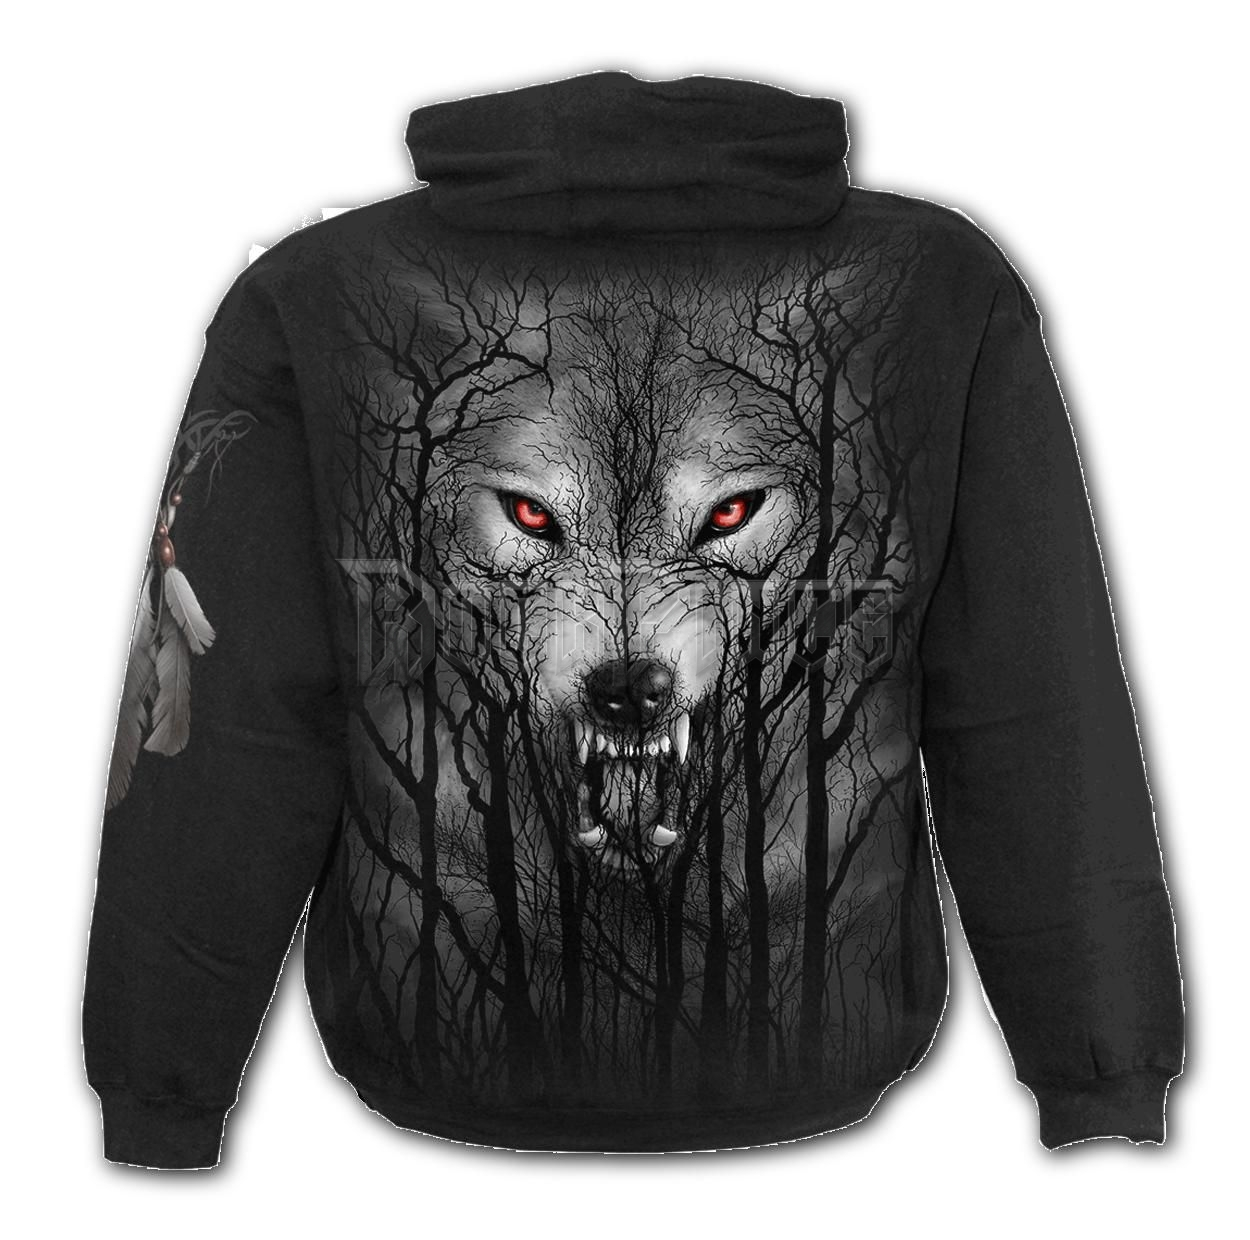 FOREST WOLF - Hoody Black (Plain) - E030M451